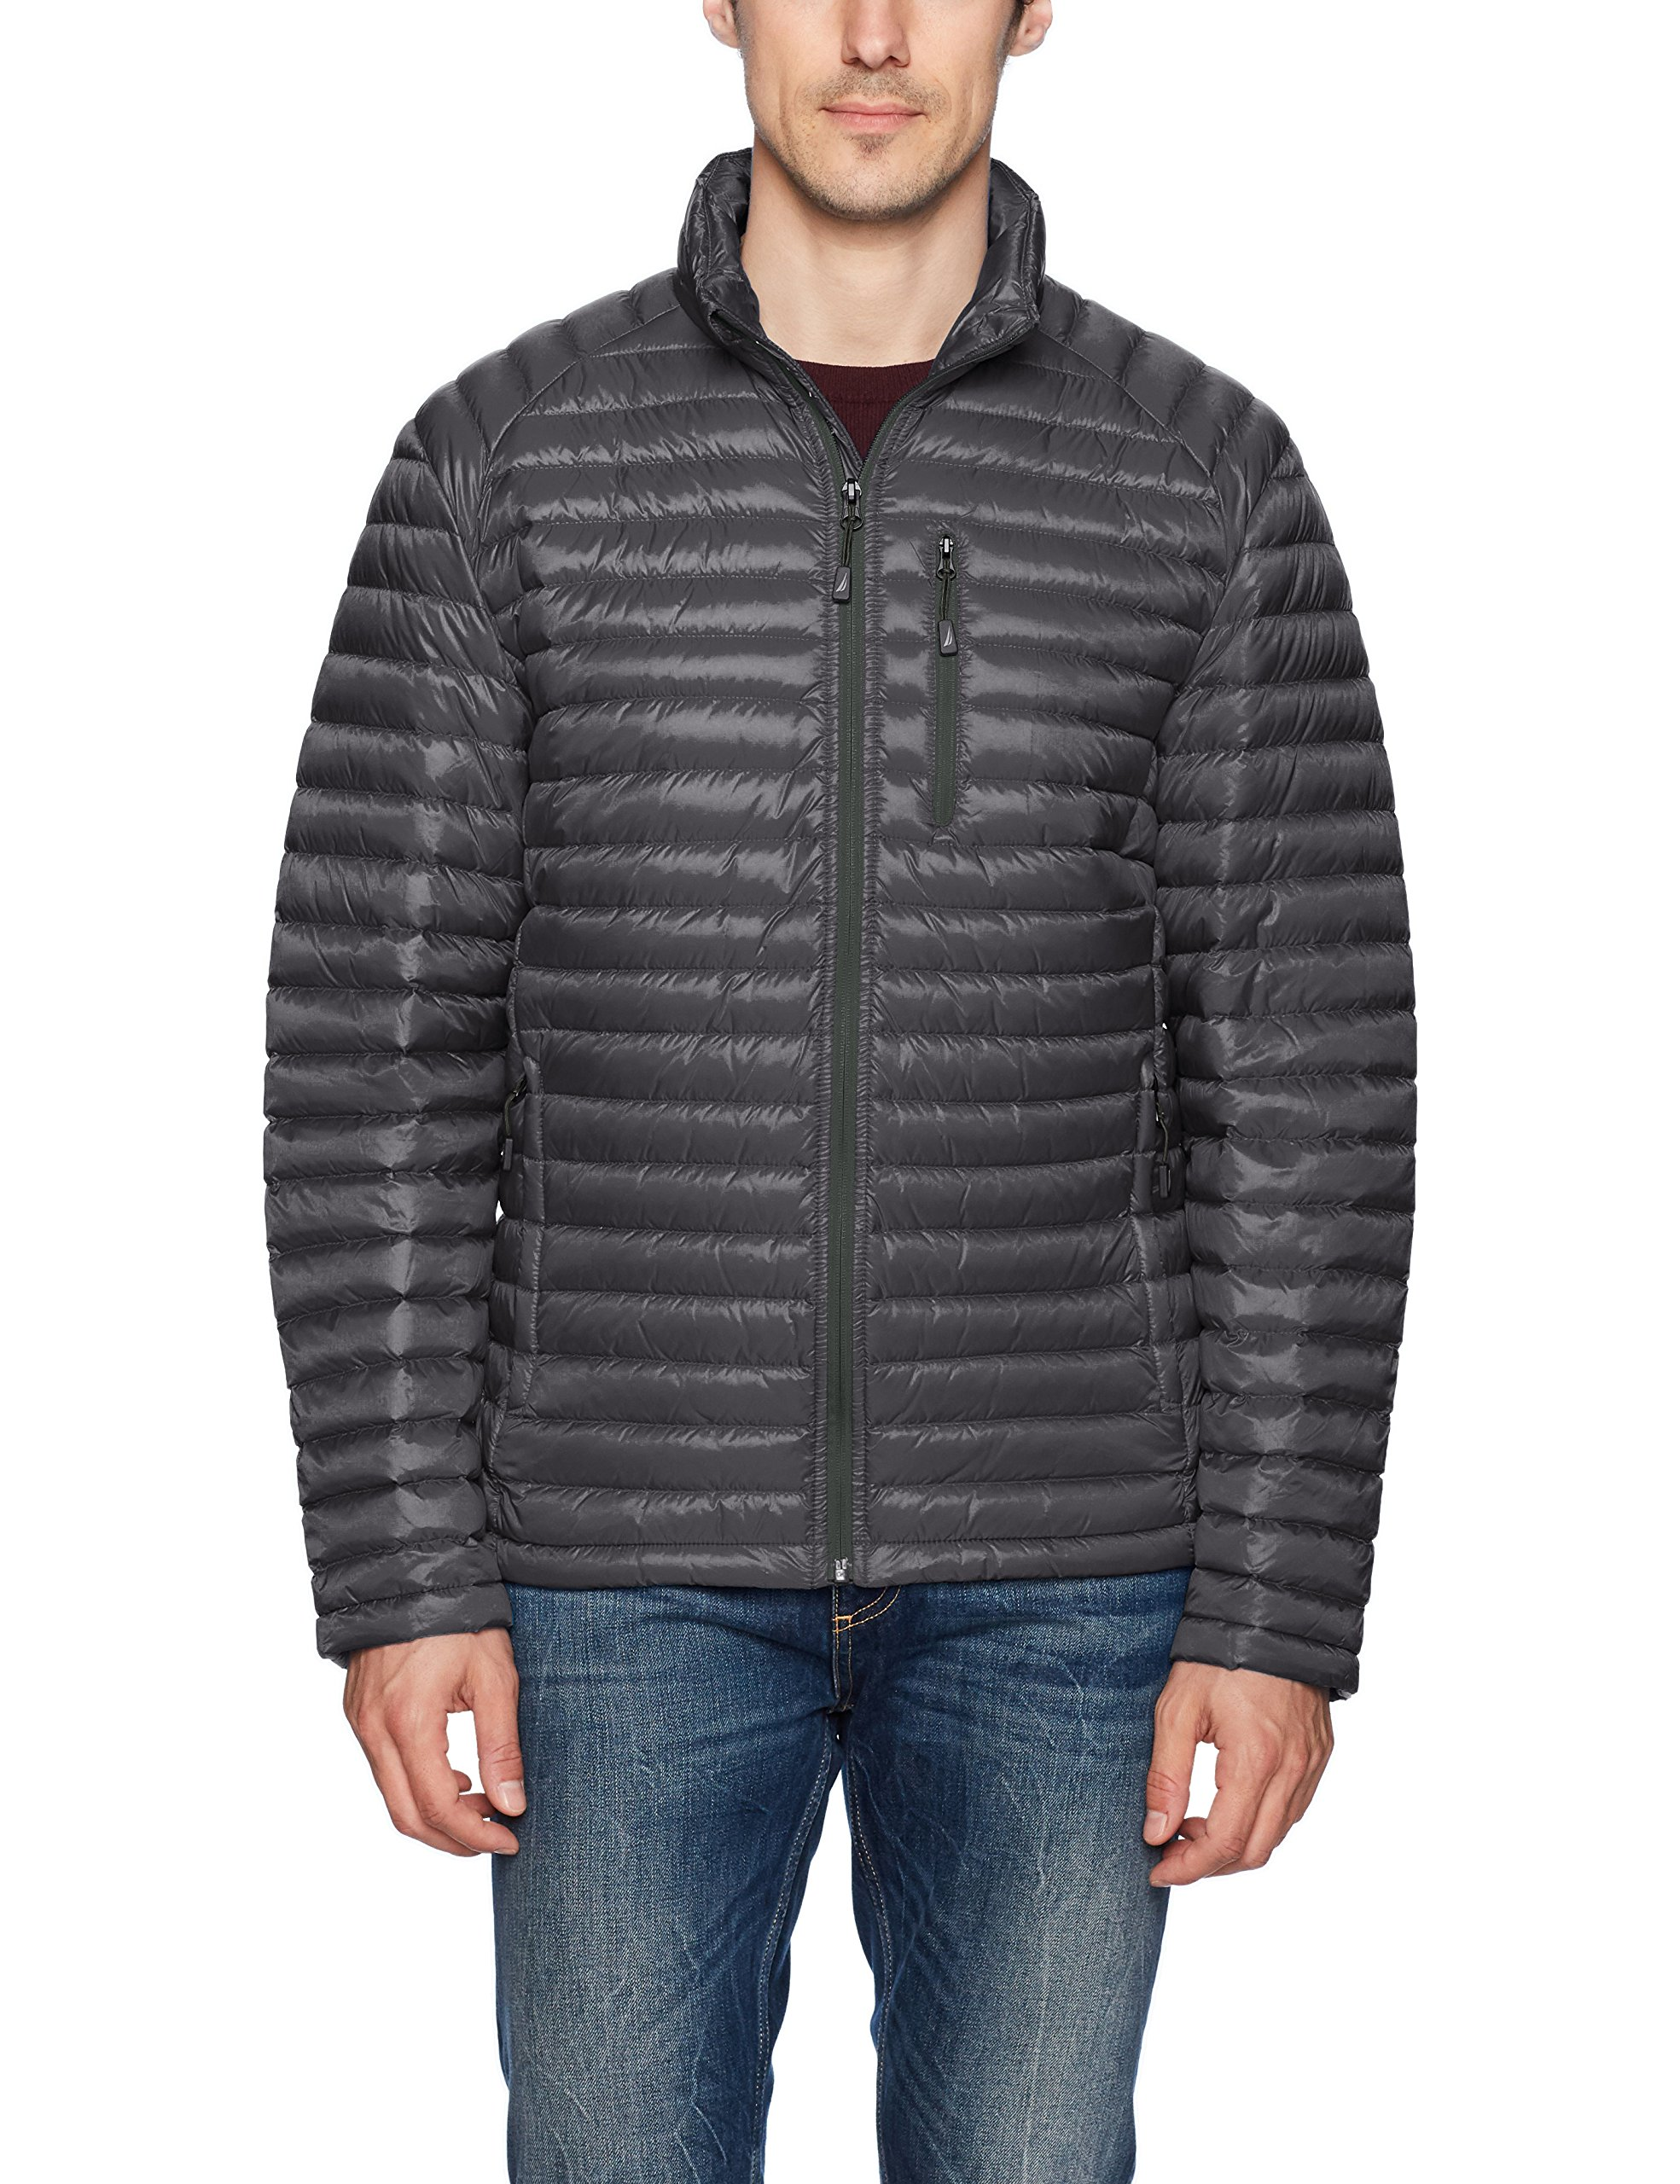 Nautica Men's Down Packable Puffer Jacket, Carbon, M by Nautica